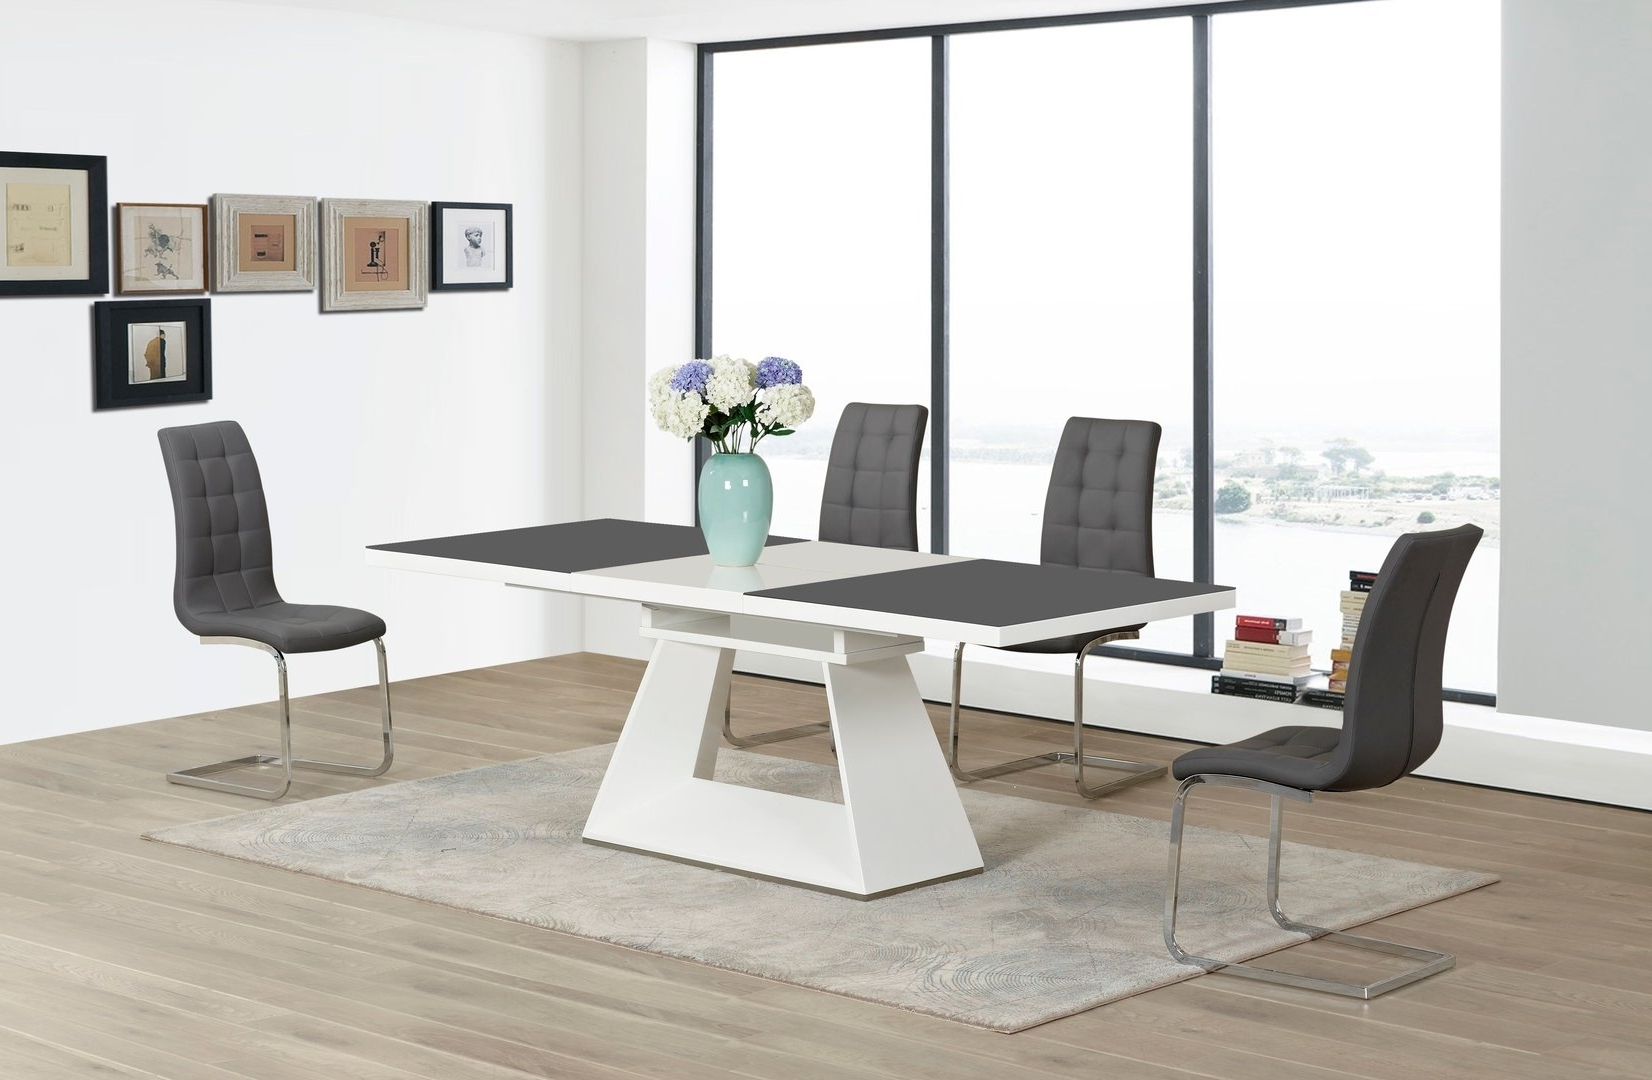 Extendable Dining Tables And 6 Chairs intended for Trendy Extending Dining Table Sets Uk - Castrophotos